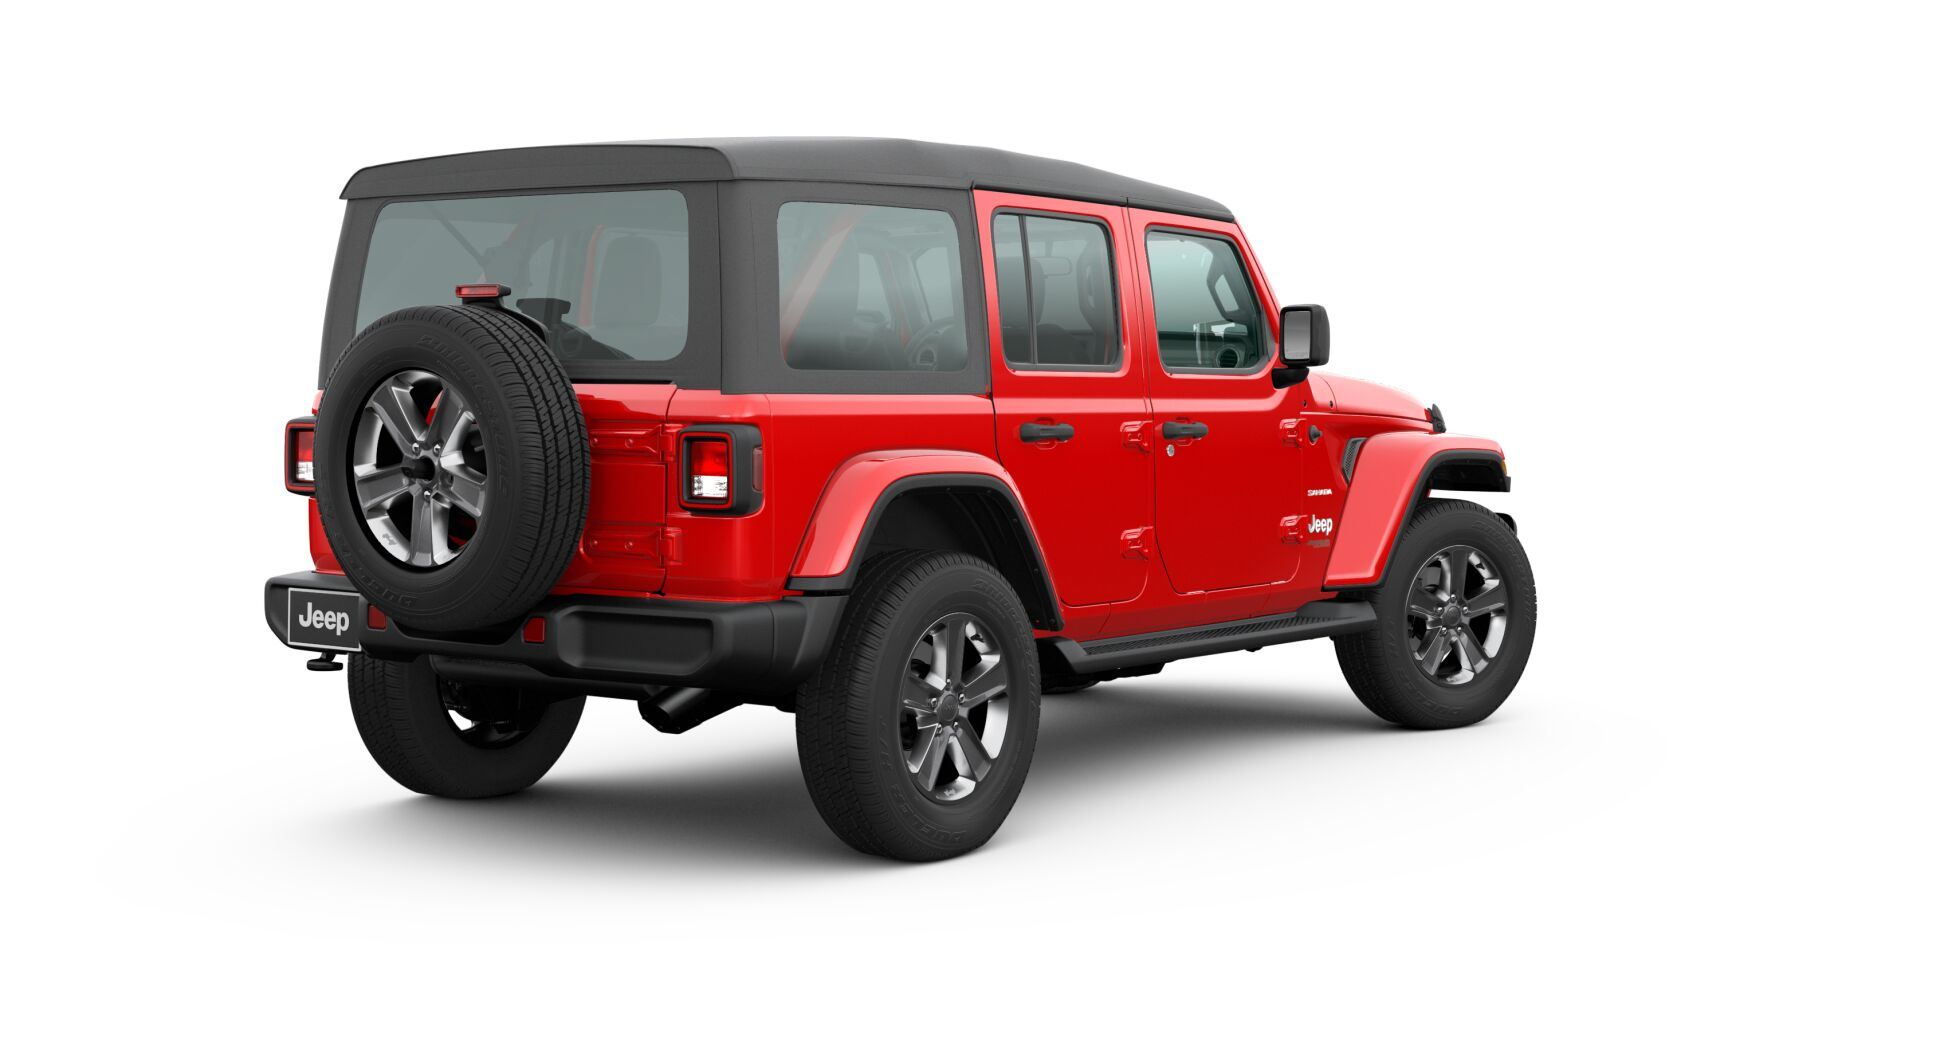 2020 Jeep Wrangler soft top up